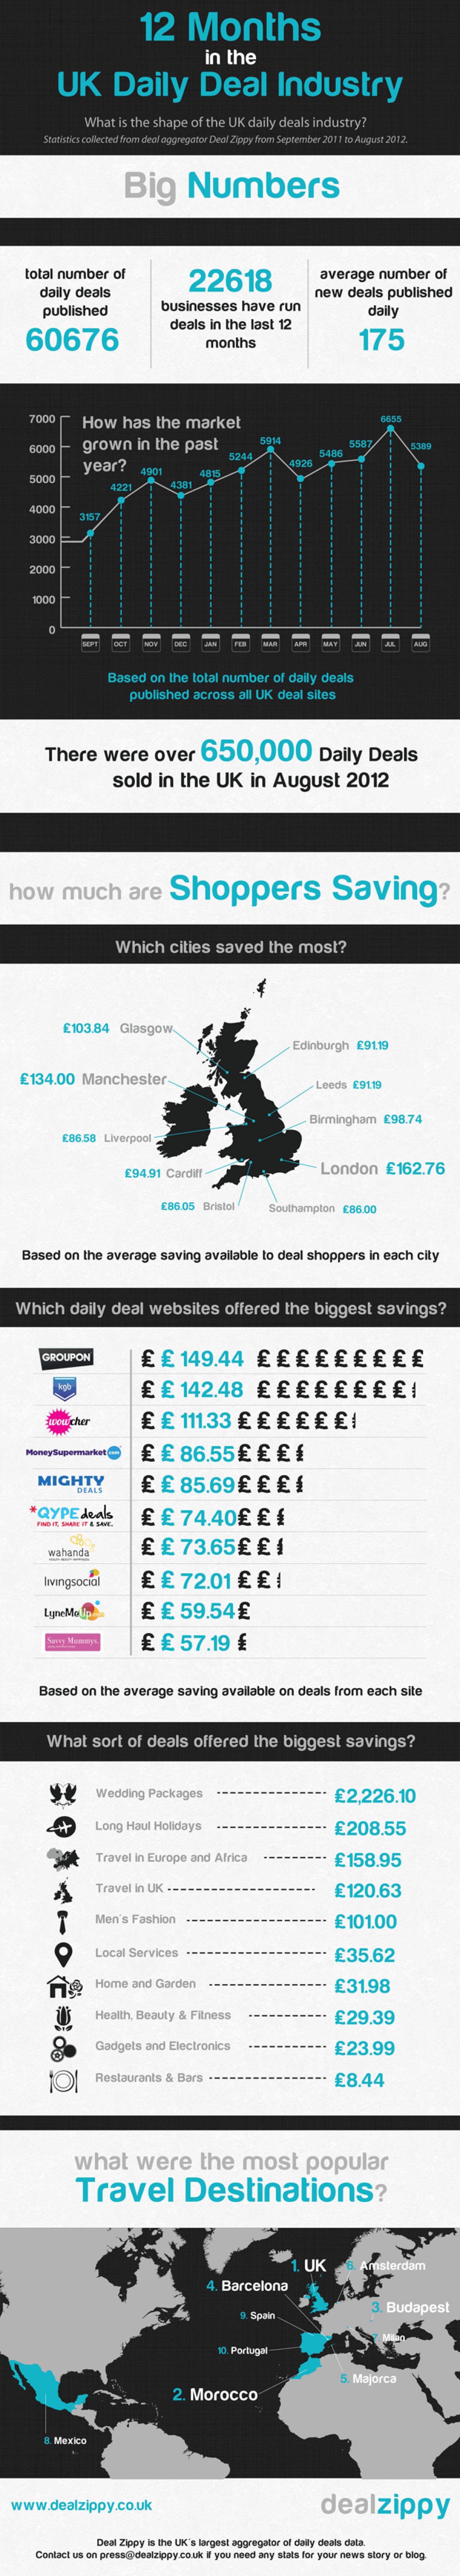 12 Months in the UK Daily Deals Industry Infographic